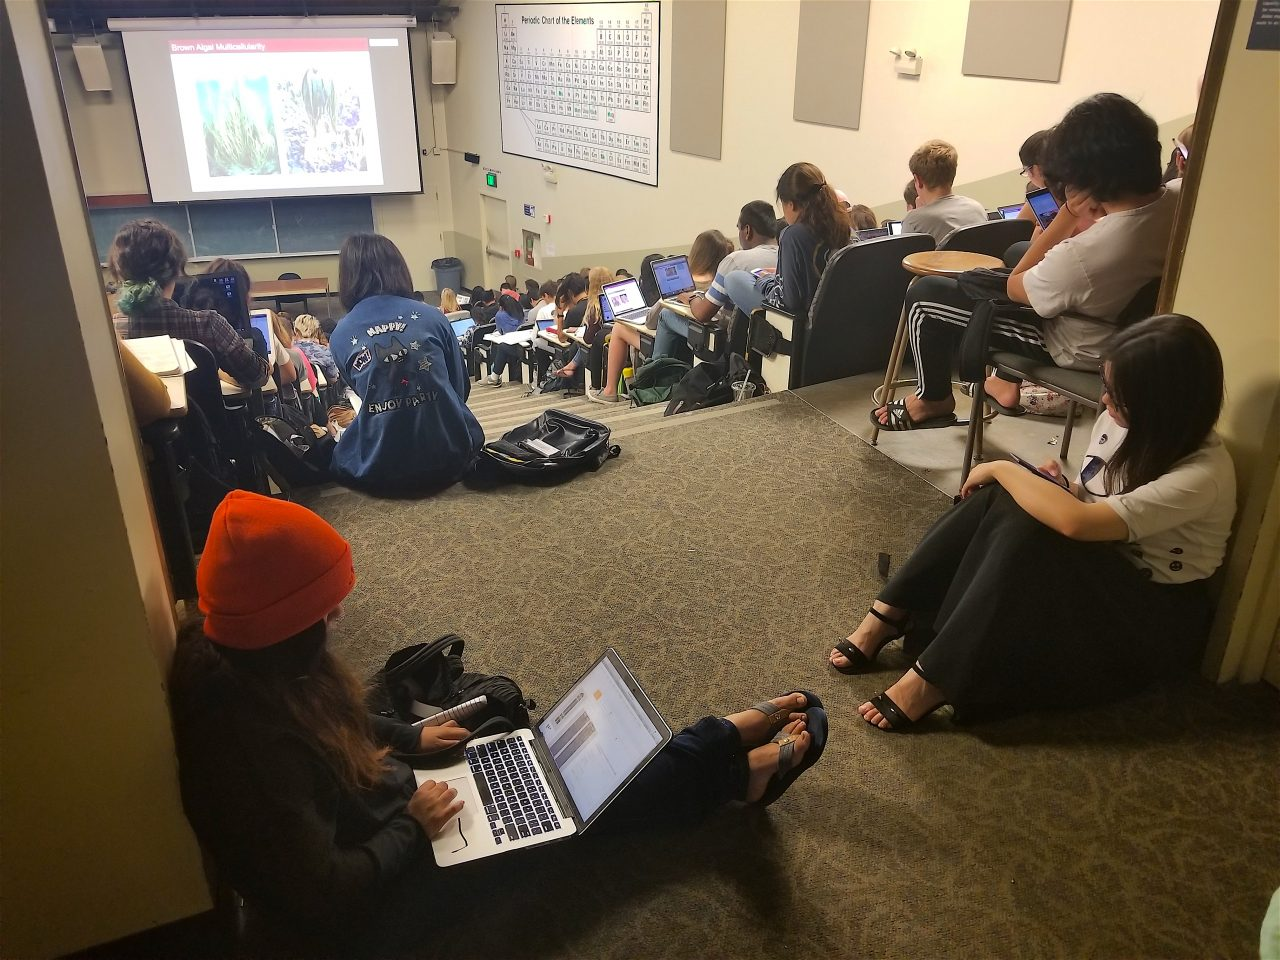 Students at this UC Davis lecture are forced to take tnotes on the floor because there aren't enough seats for all of them. Photo by Felicia Mello for CALmattters